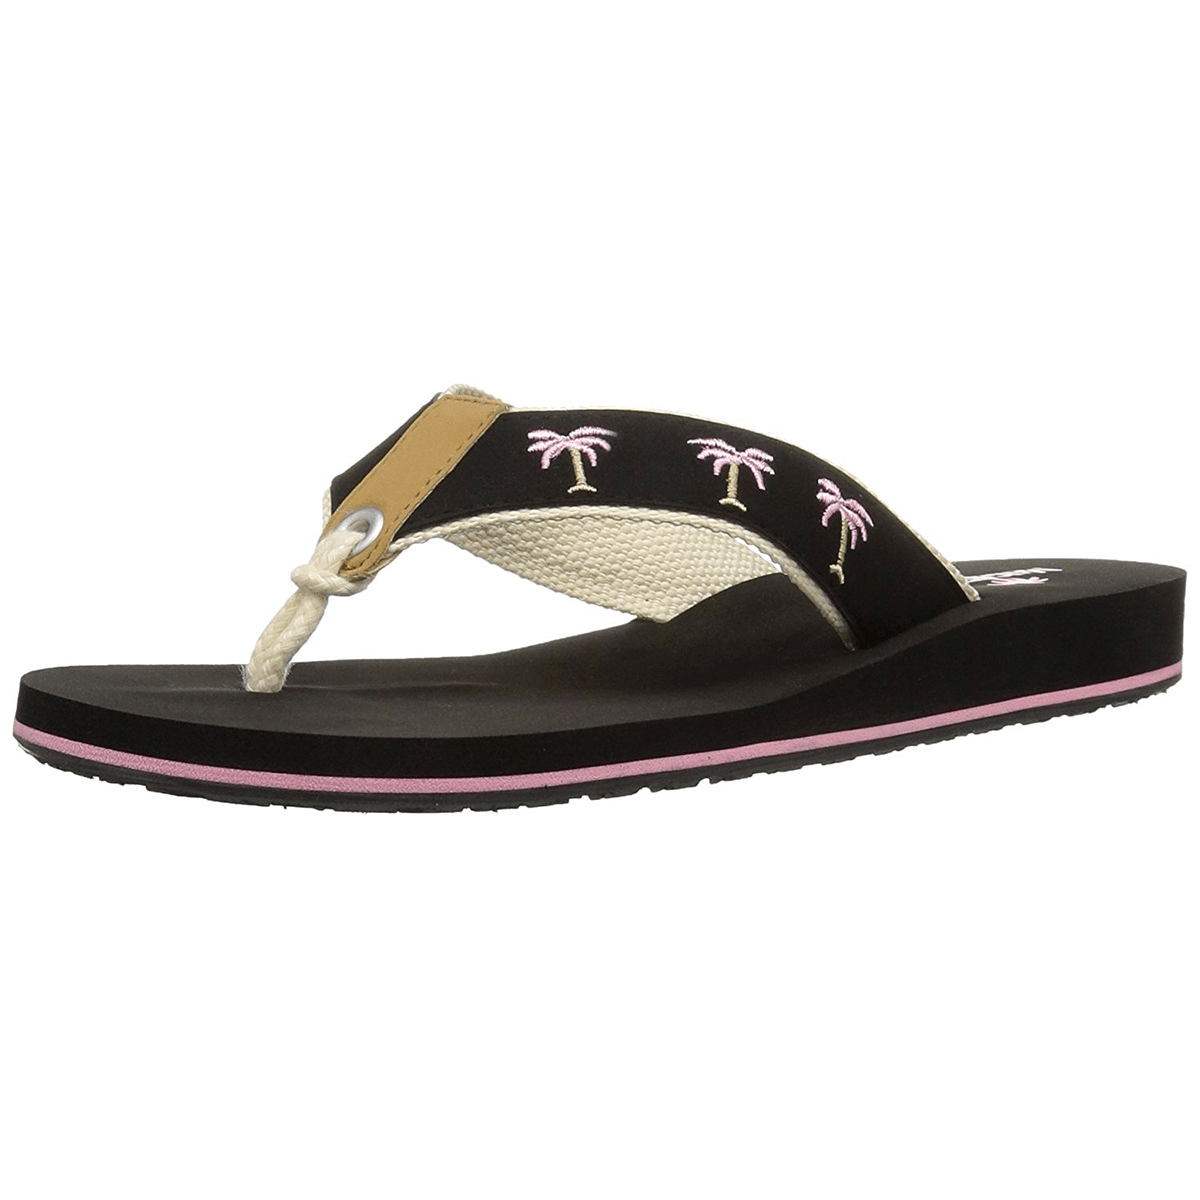 fb02a1c2e LADIES BREEZY FLIP FLOP - Margaritaville Apparel Store